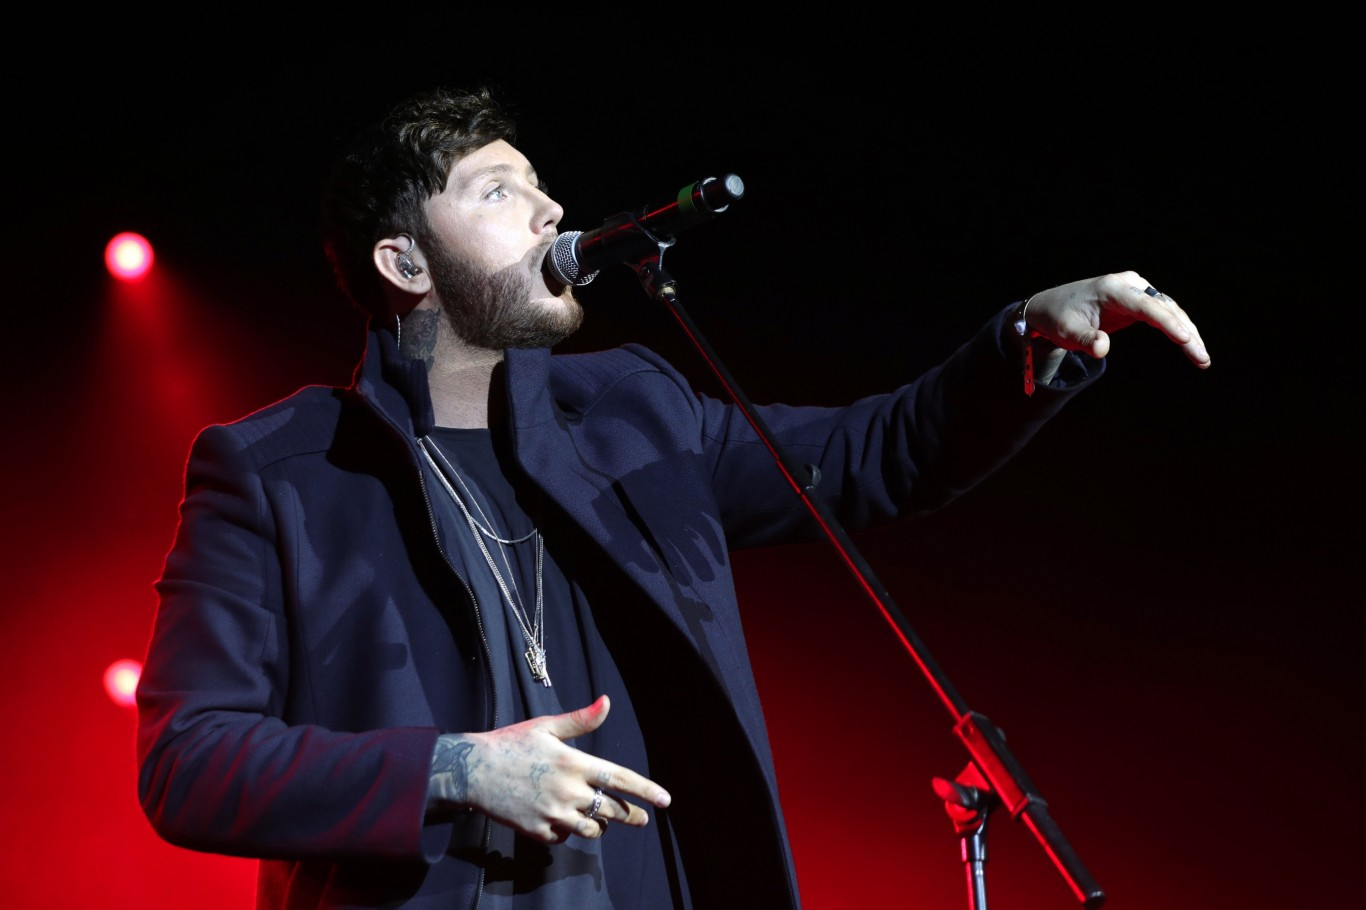 James Arthur has a little gift to put under your tree...